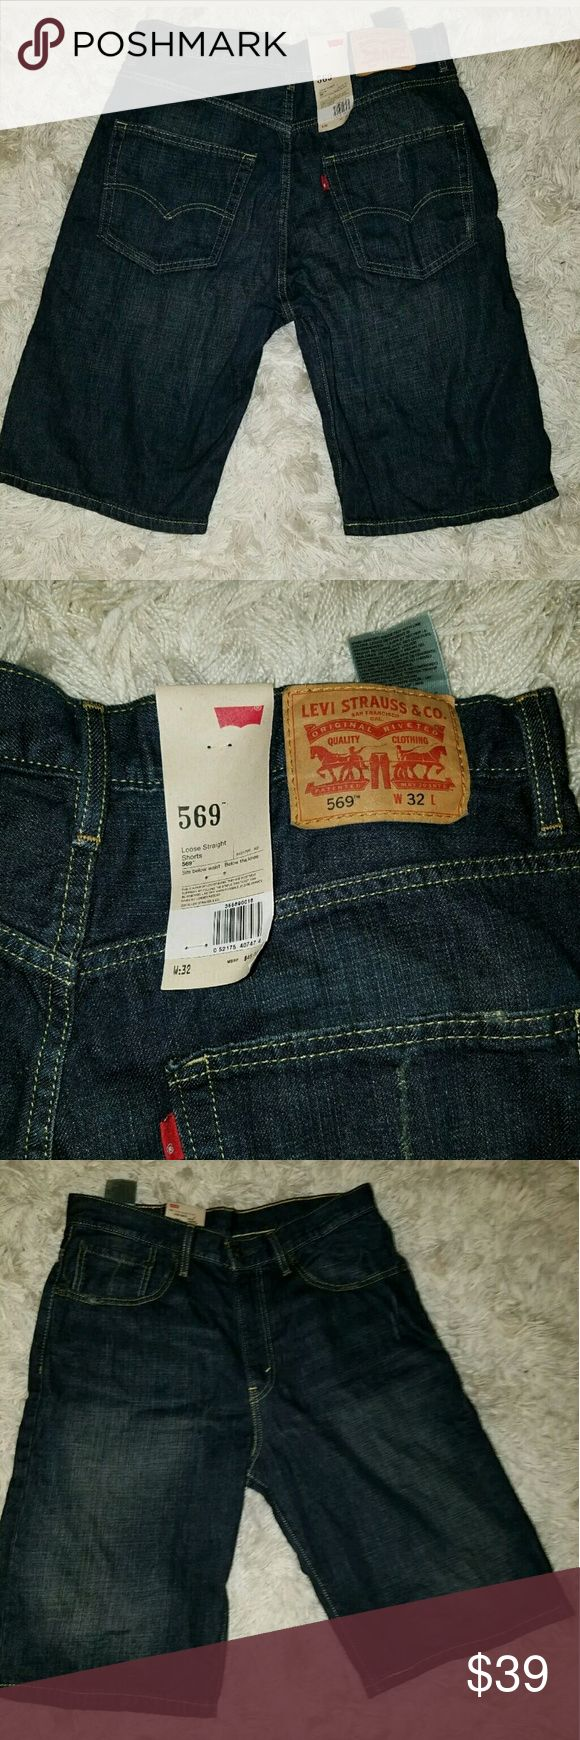 NWT Levi's 569 Loose Straight Dark Blue Shorts NWT Men's Levi's 569 Loose Straight Dark Blue Denim Jean Shorts Size 32  Tag size 32.   Waist measures 35 inches. 12 inch inseam. 23.5 inches long from waist to hem.    AB Levi's Shorts Flat Front